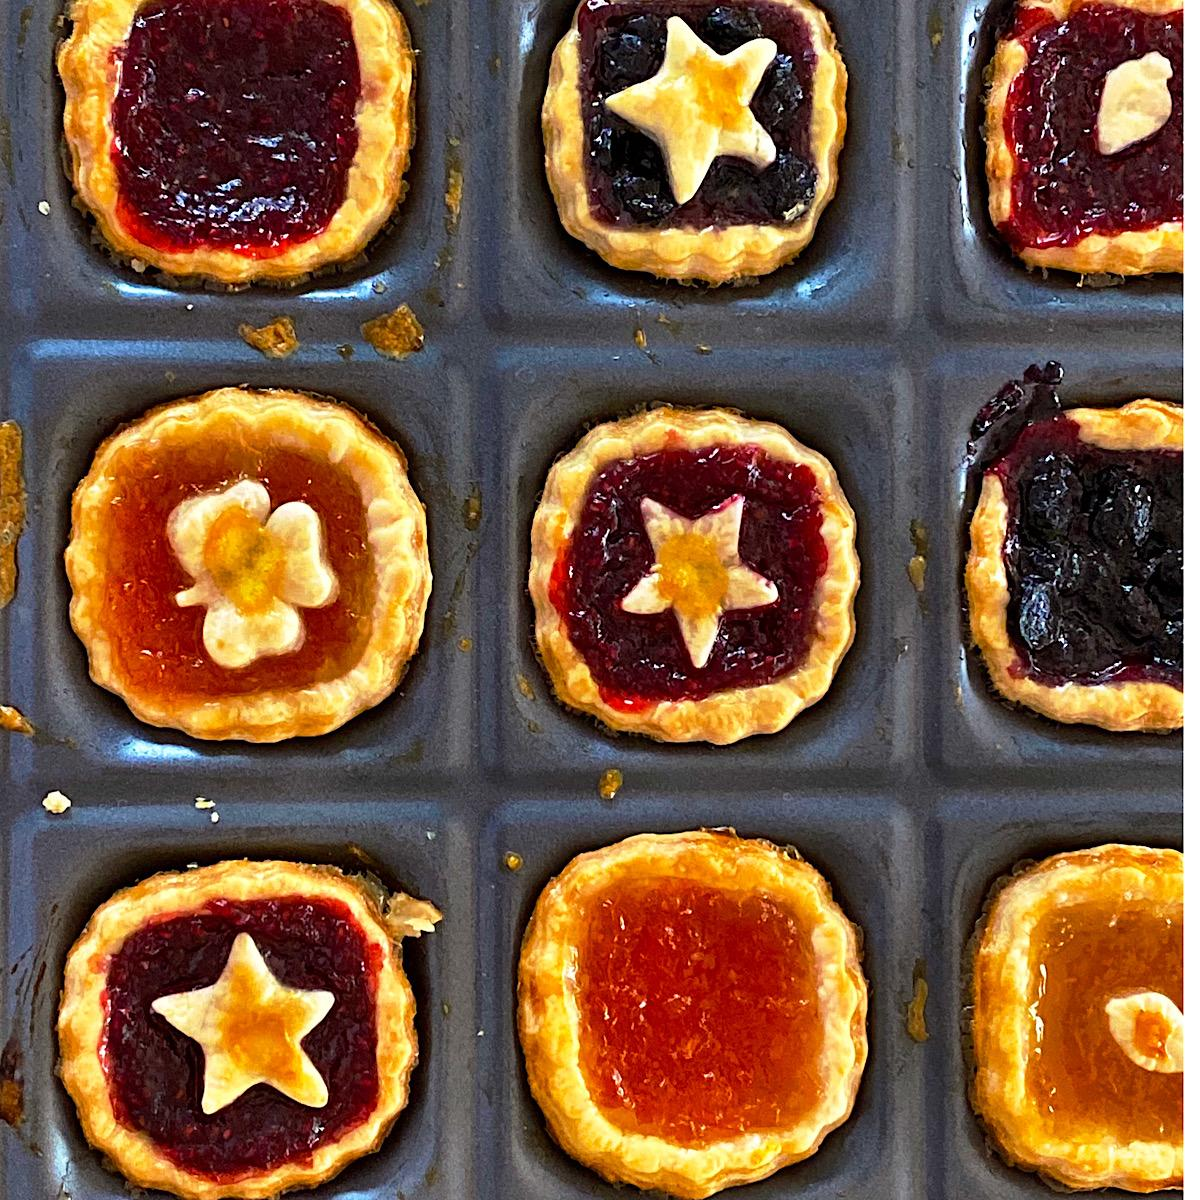 9 jam tarts in a baking tin made with pie dough and great jam